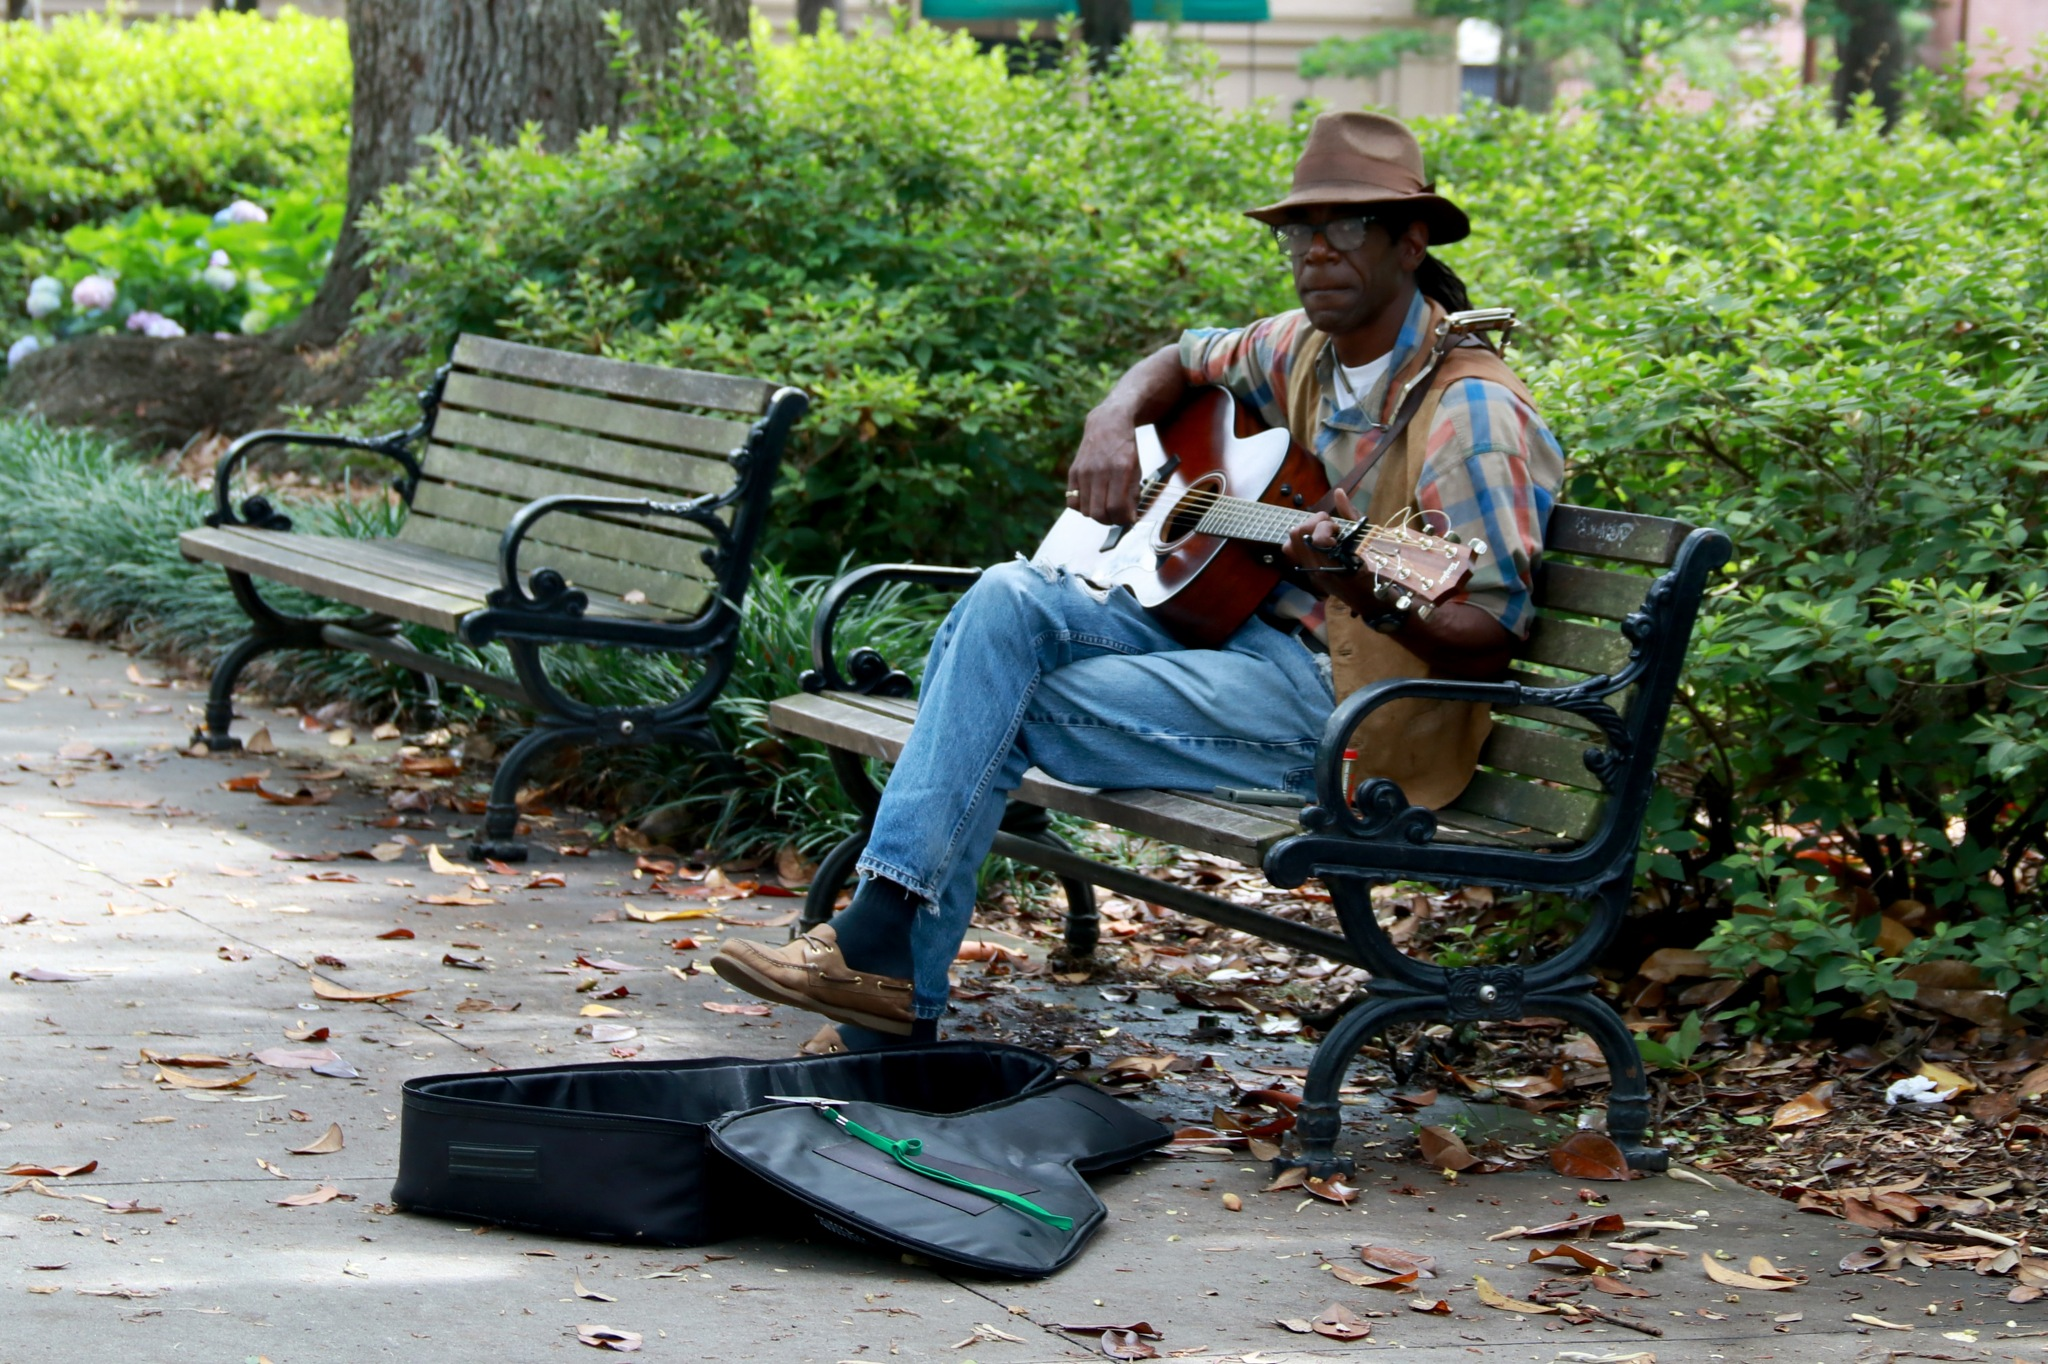 Wonderful day for some music in the park. by James B Justice